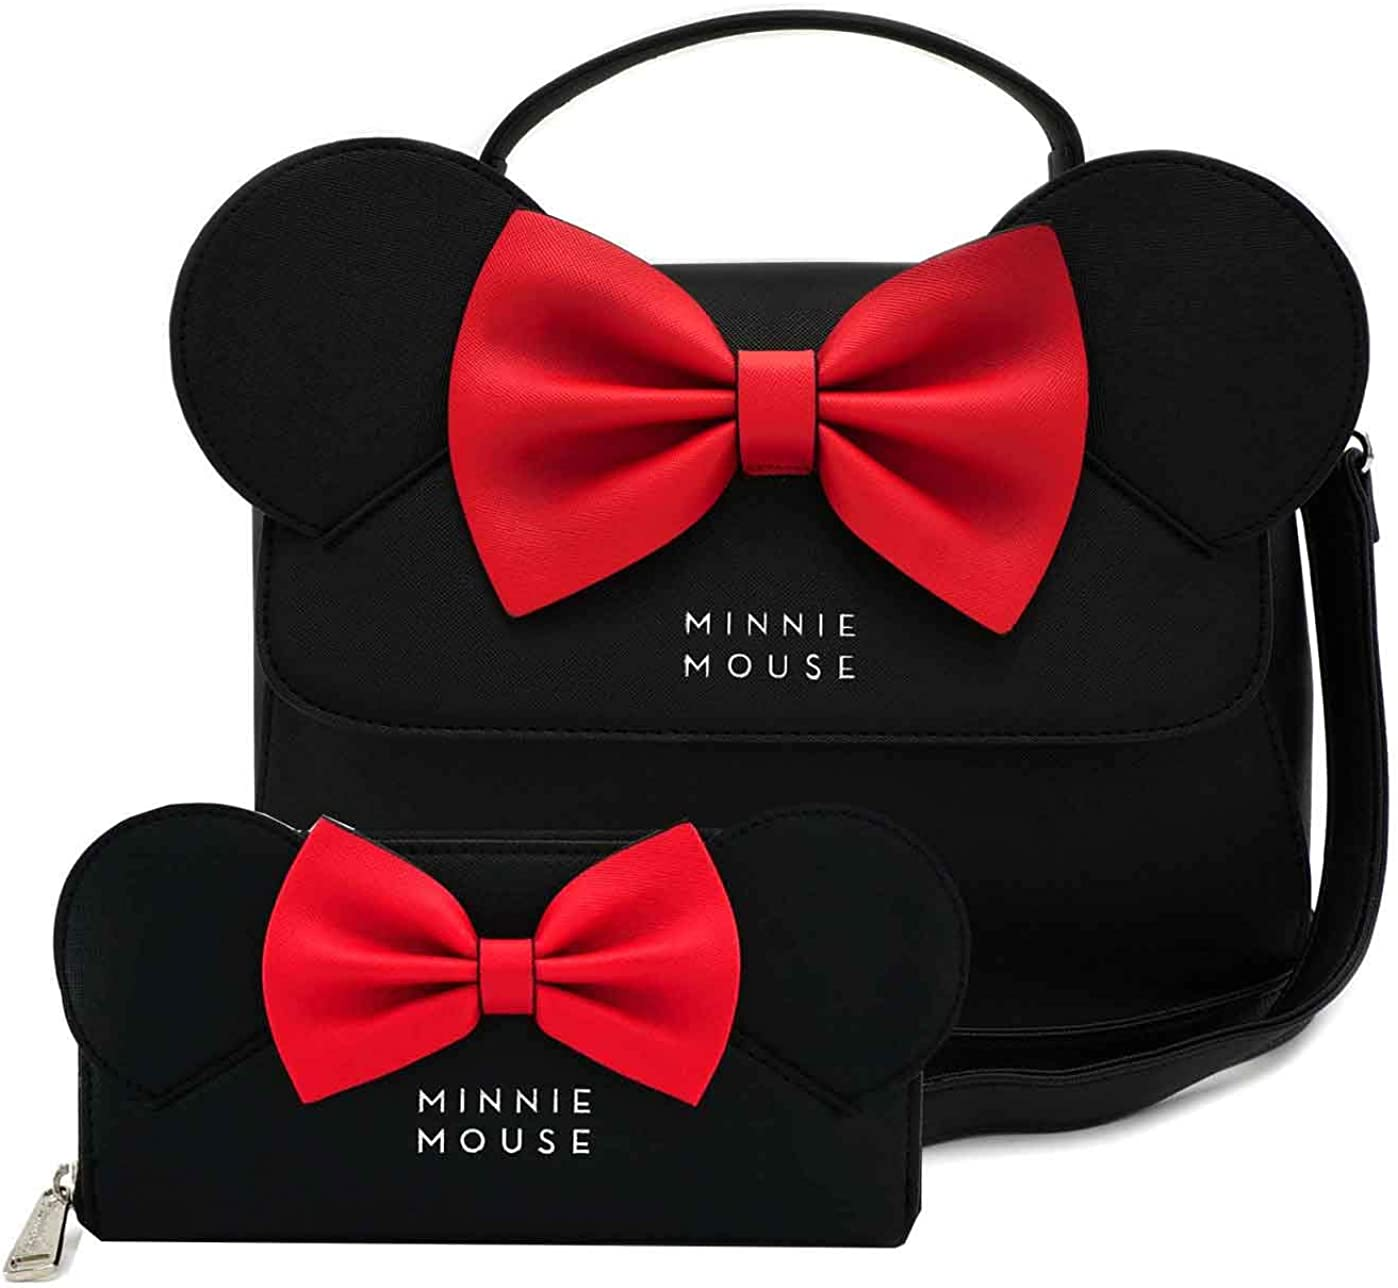 Disney Minnie Mouse Ears...